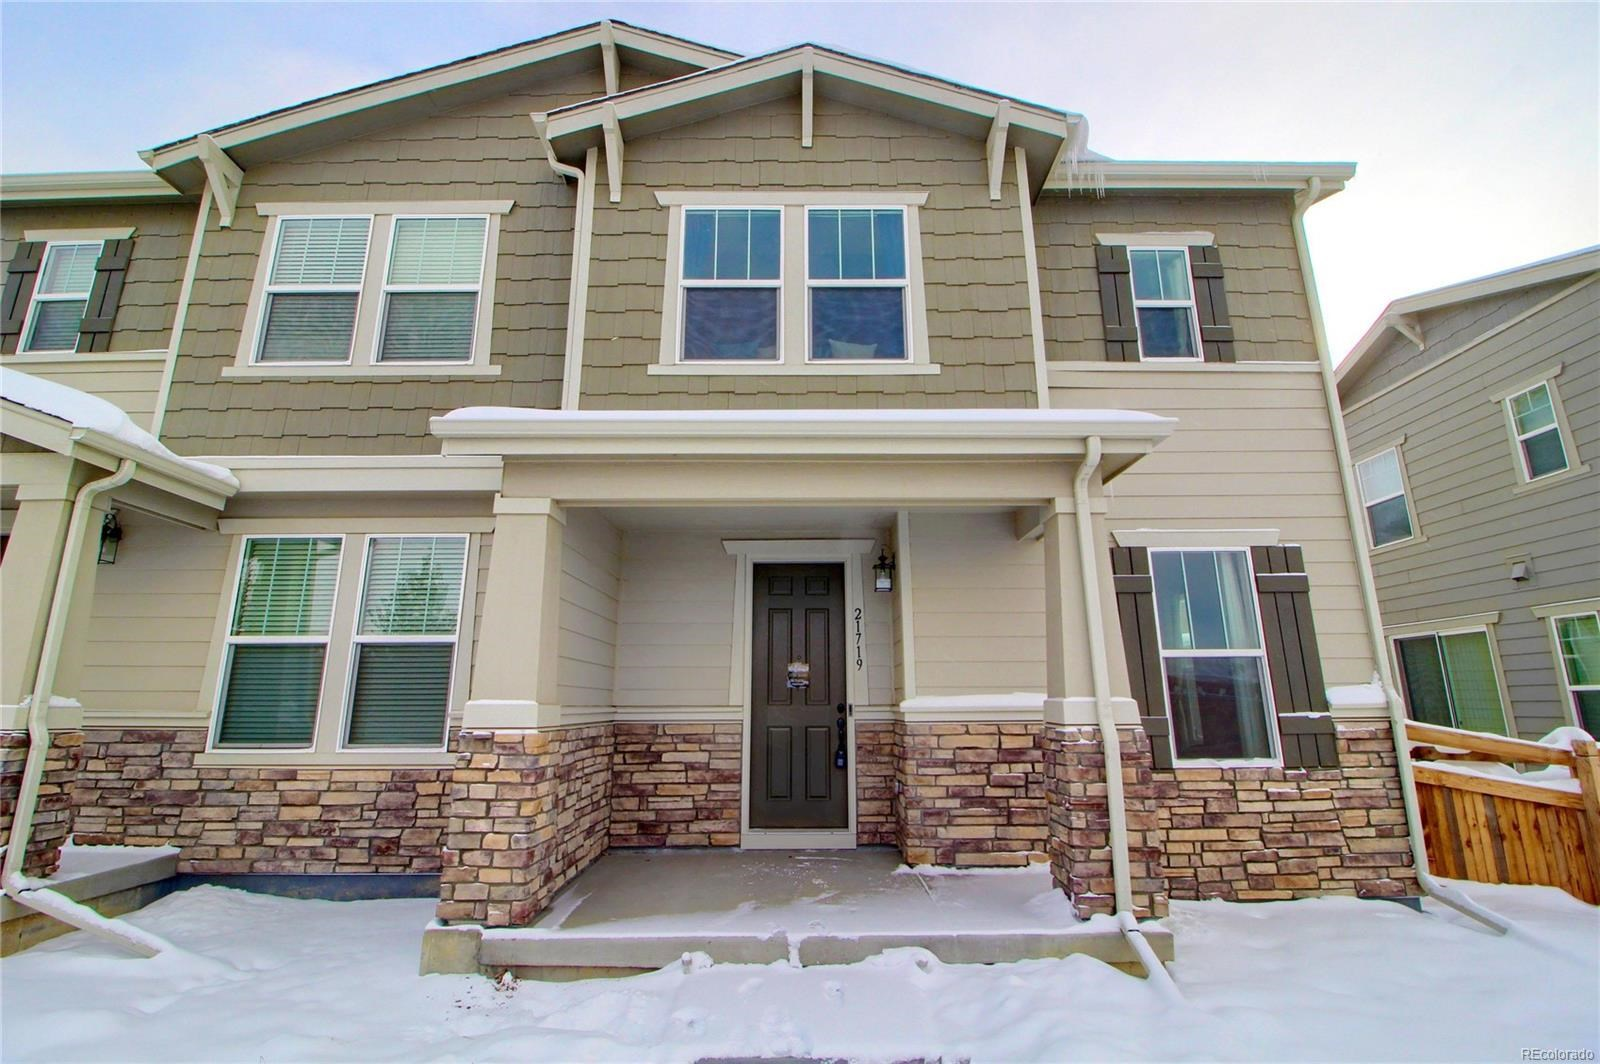 MLS# 4512739 - 23 - 21719 E Quincy Circle, Aurora, CO 80015